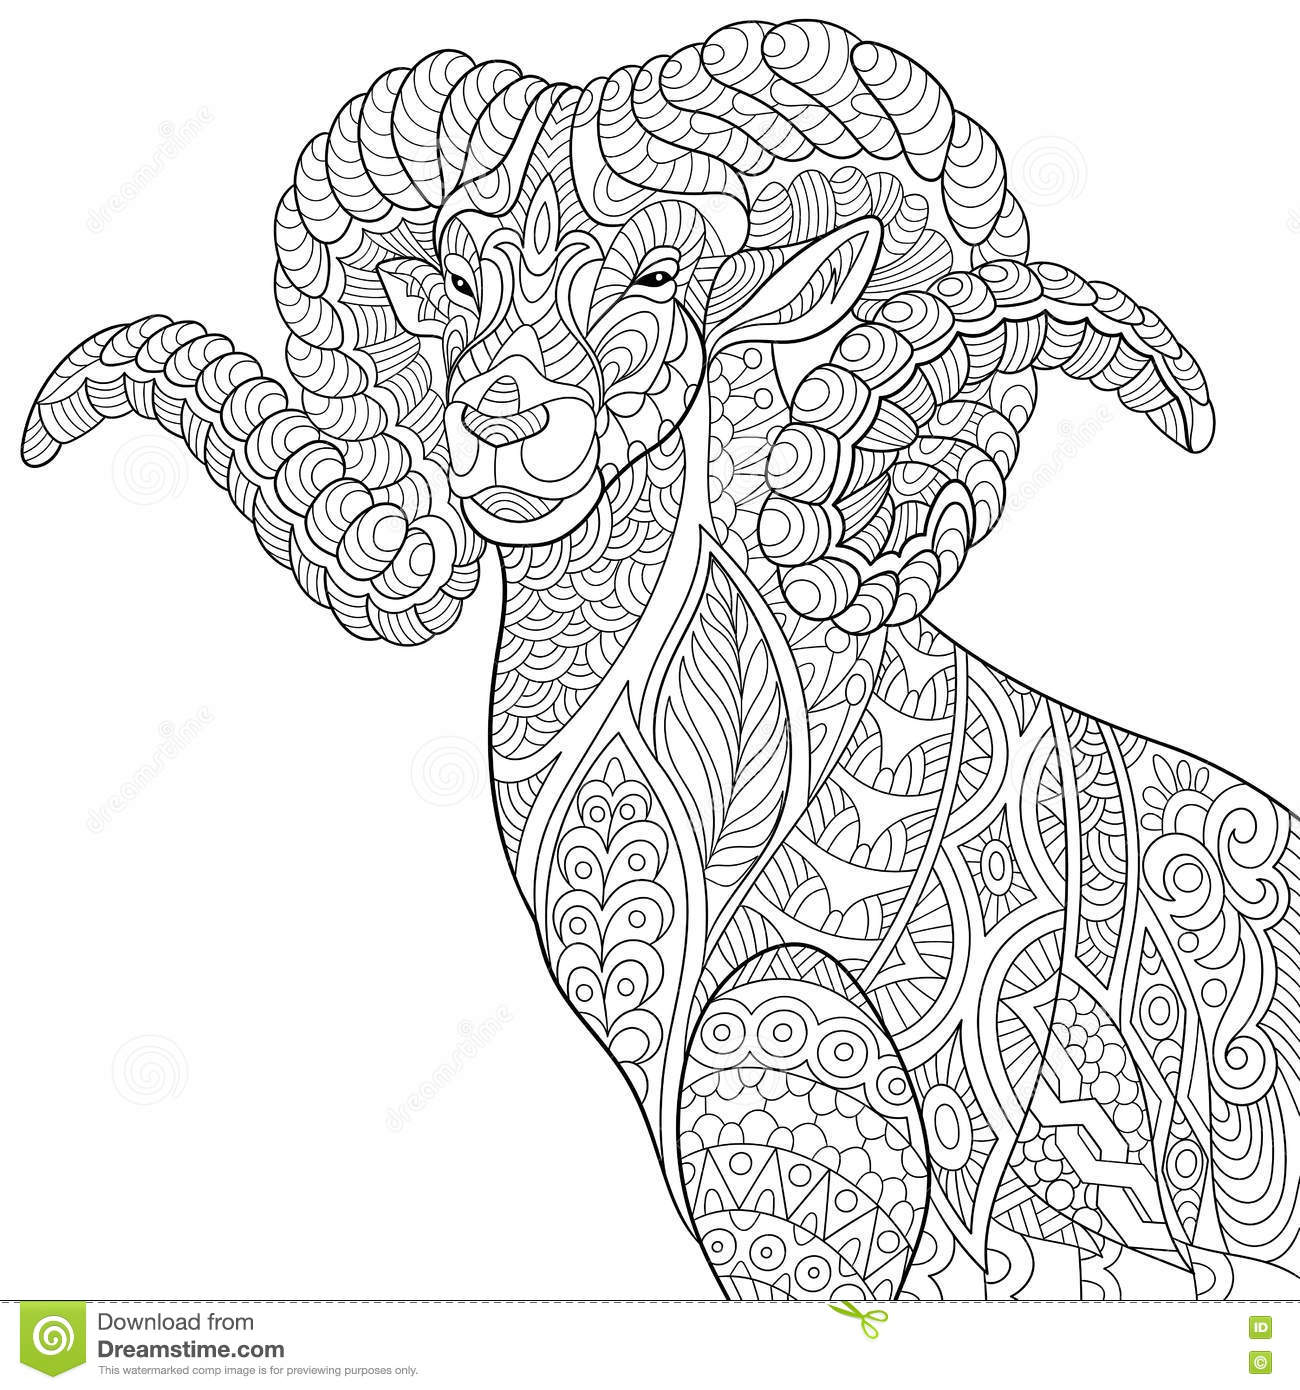 6dbb603b6 Zentangle stylized cartoon goat (ram, ibex, aries or capricorn zodiac).  Hand drawn sketch for adult antistress coloring page, T-shirt emblem, logo  or tattoo ...